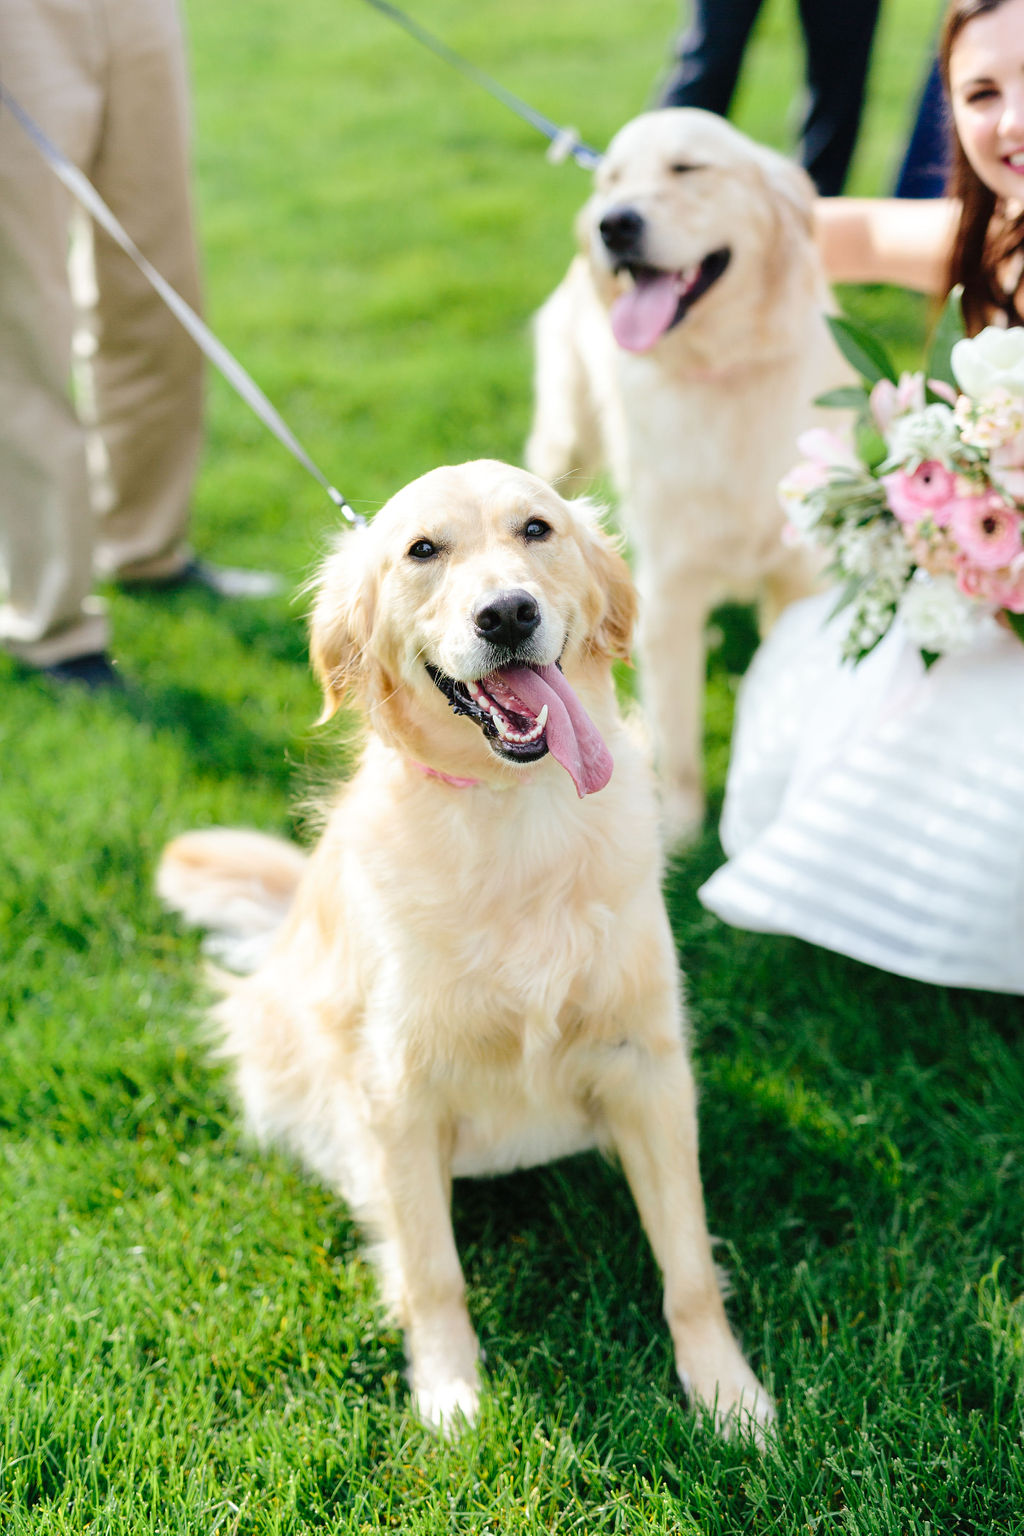 Dogs at the wedding - golden retriever - Preppy spring wedding at Zingerman's Cornman Farms - Leah E. Moss Designs - photo by Katie Grace Photography